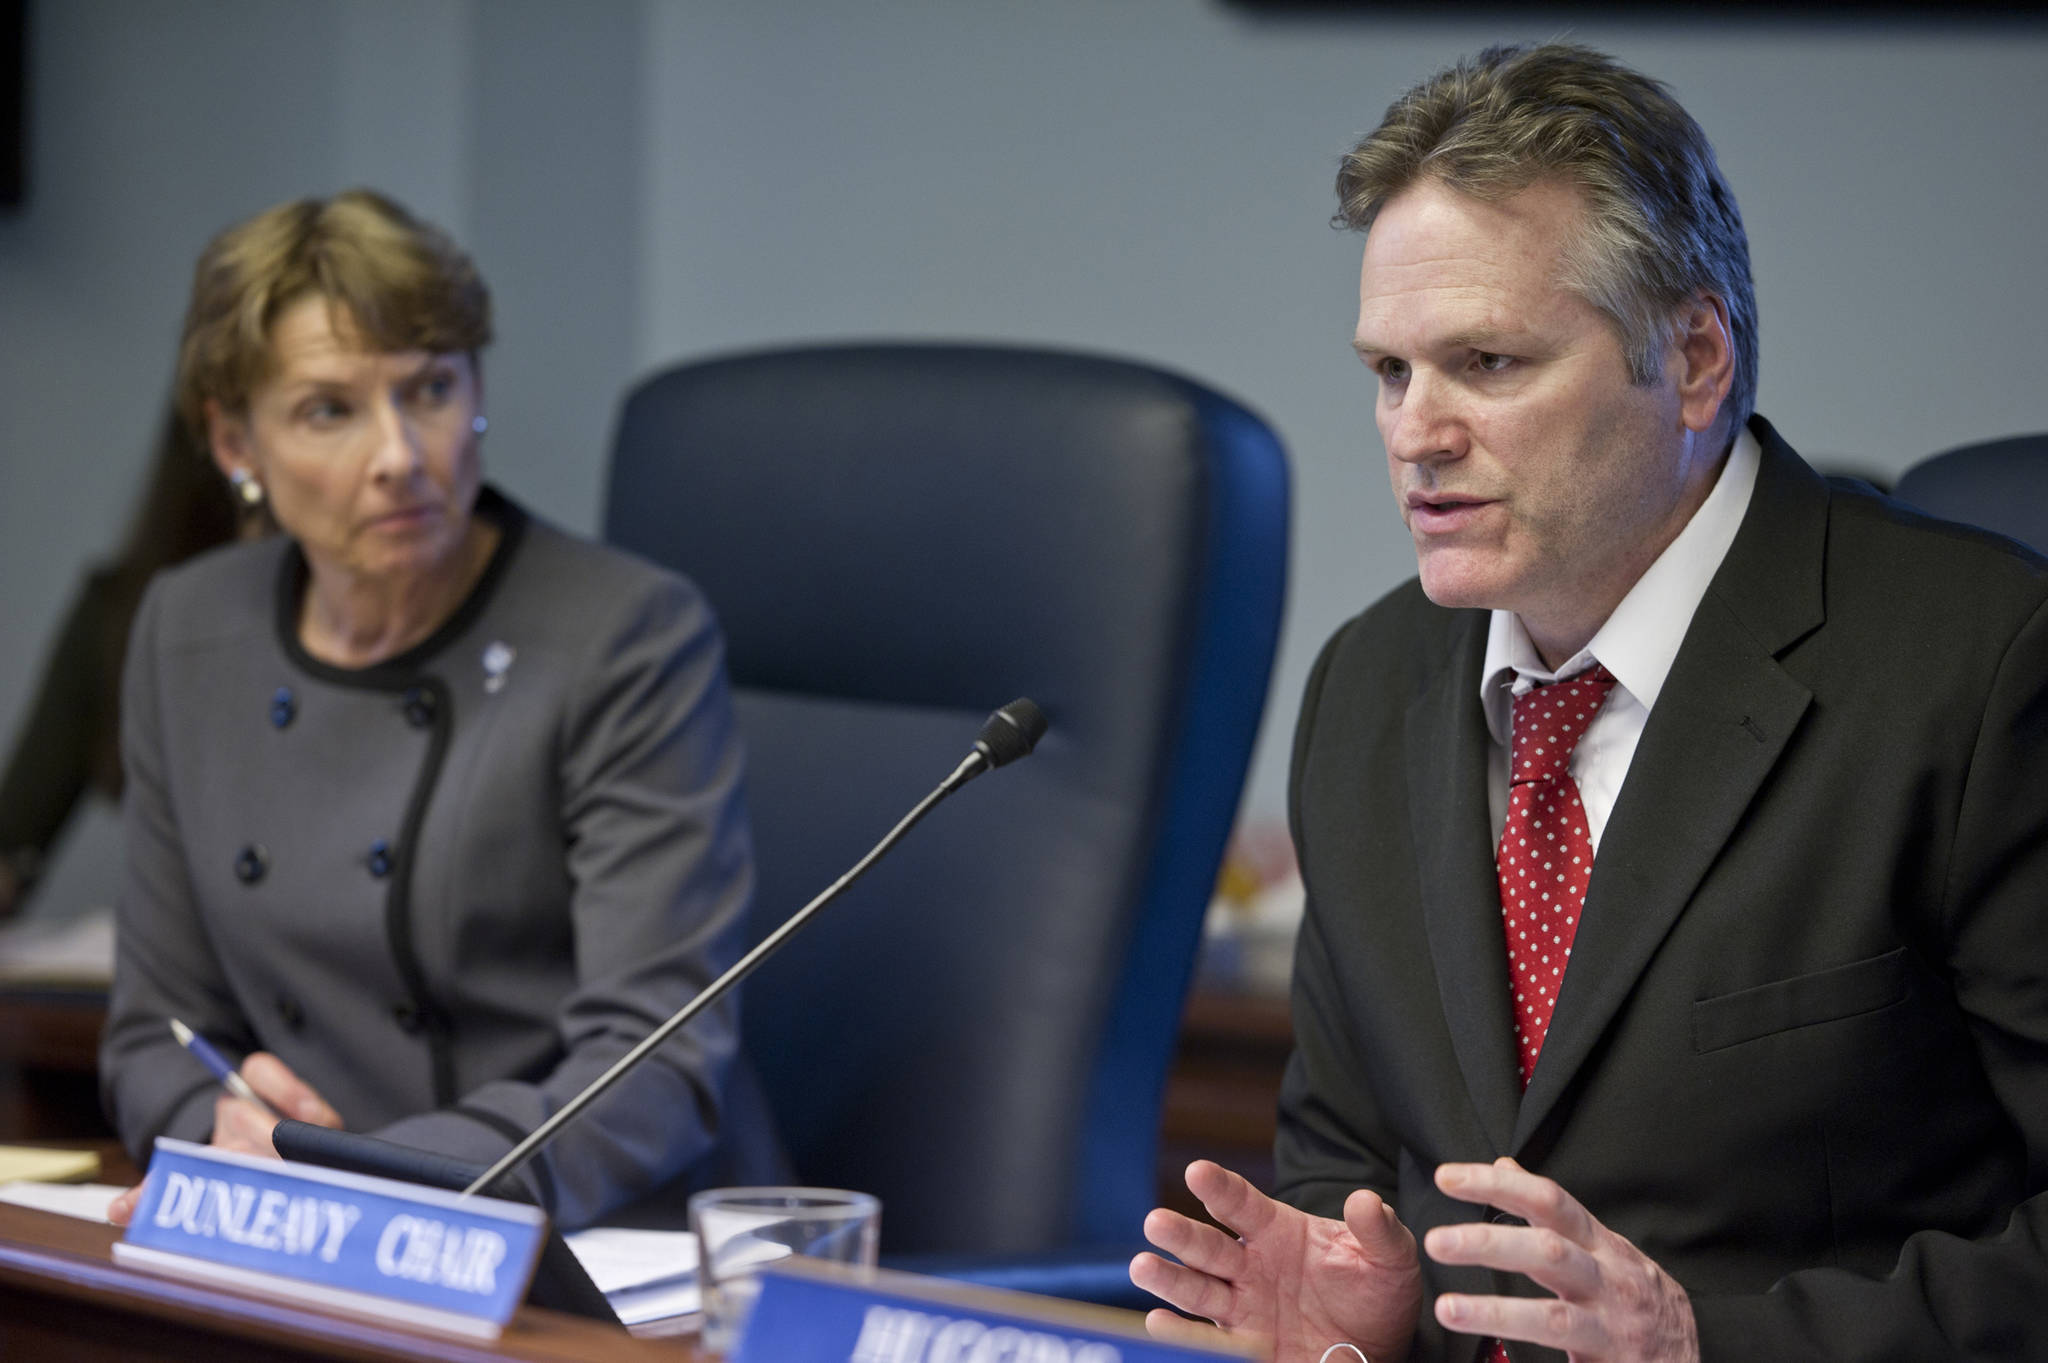 In this March 2016 photo, Sen. Mike Dunleavy, R-Wasilla, questions Dr. Susan McCauley, Interim Commissioner of the Alaska Department of Education and Early Development, during a Senate Education Committee on SB 191 at the Capitol. (Michael Penn | Juneau Empire File)